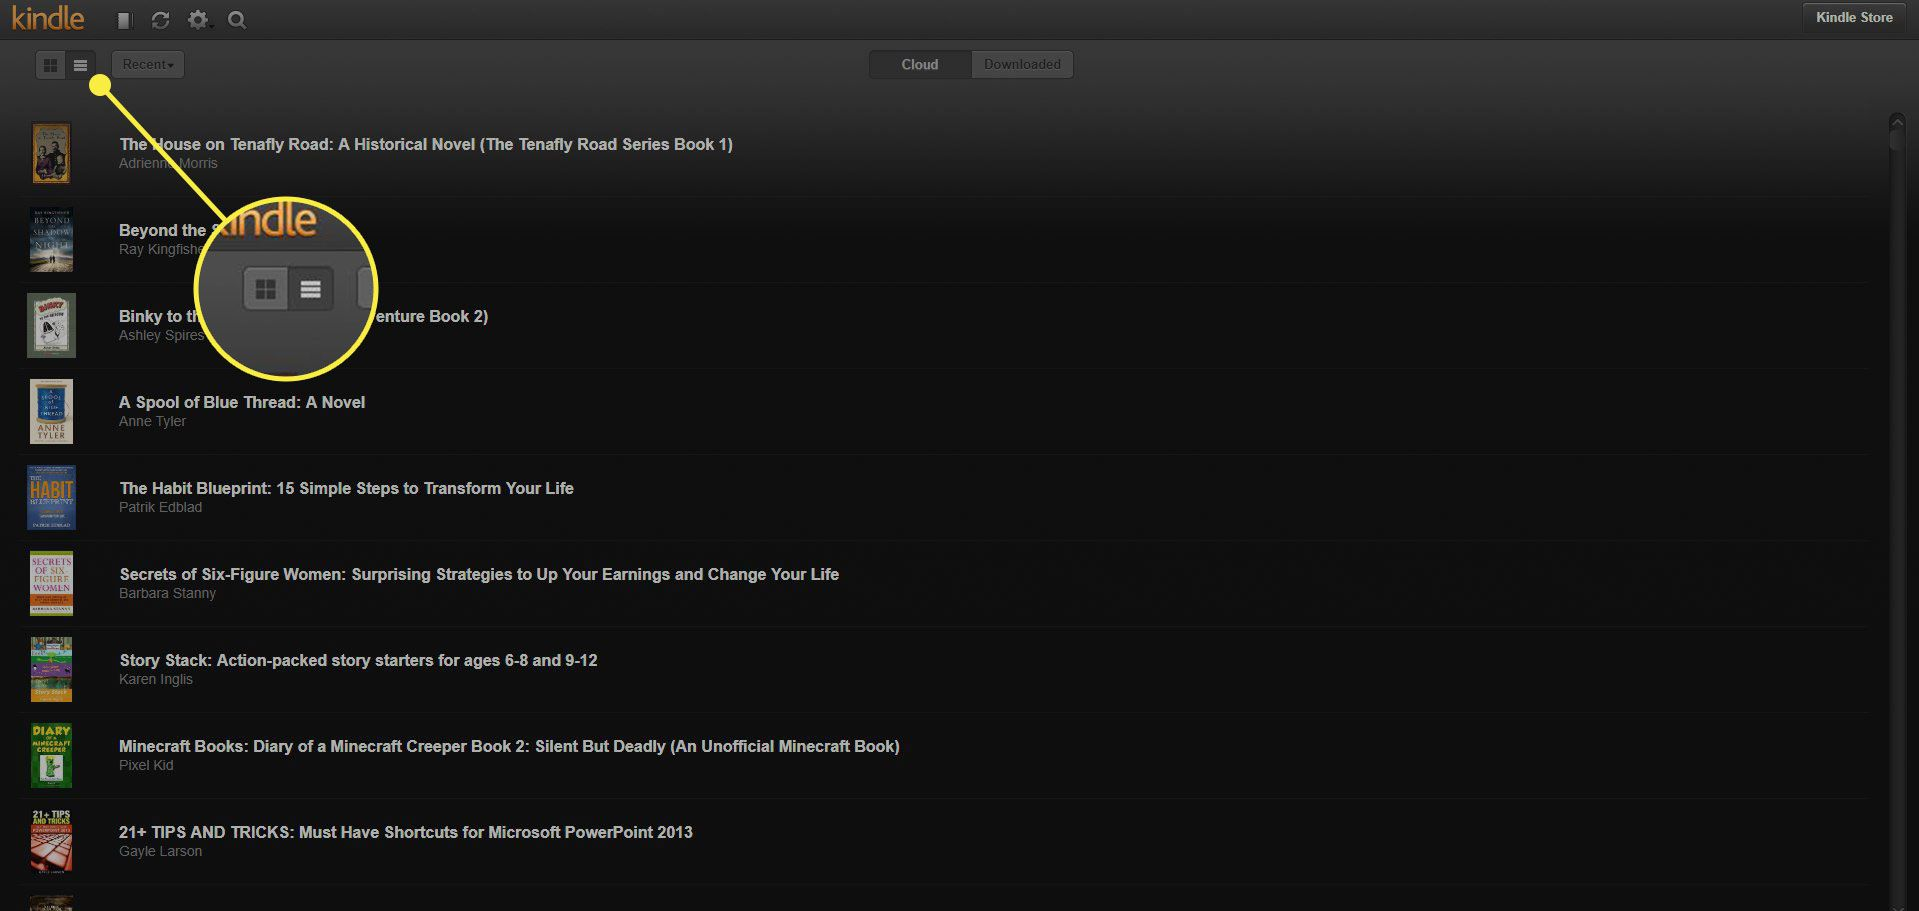 The Grid and List View buttons in Kindle Cloud Reader